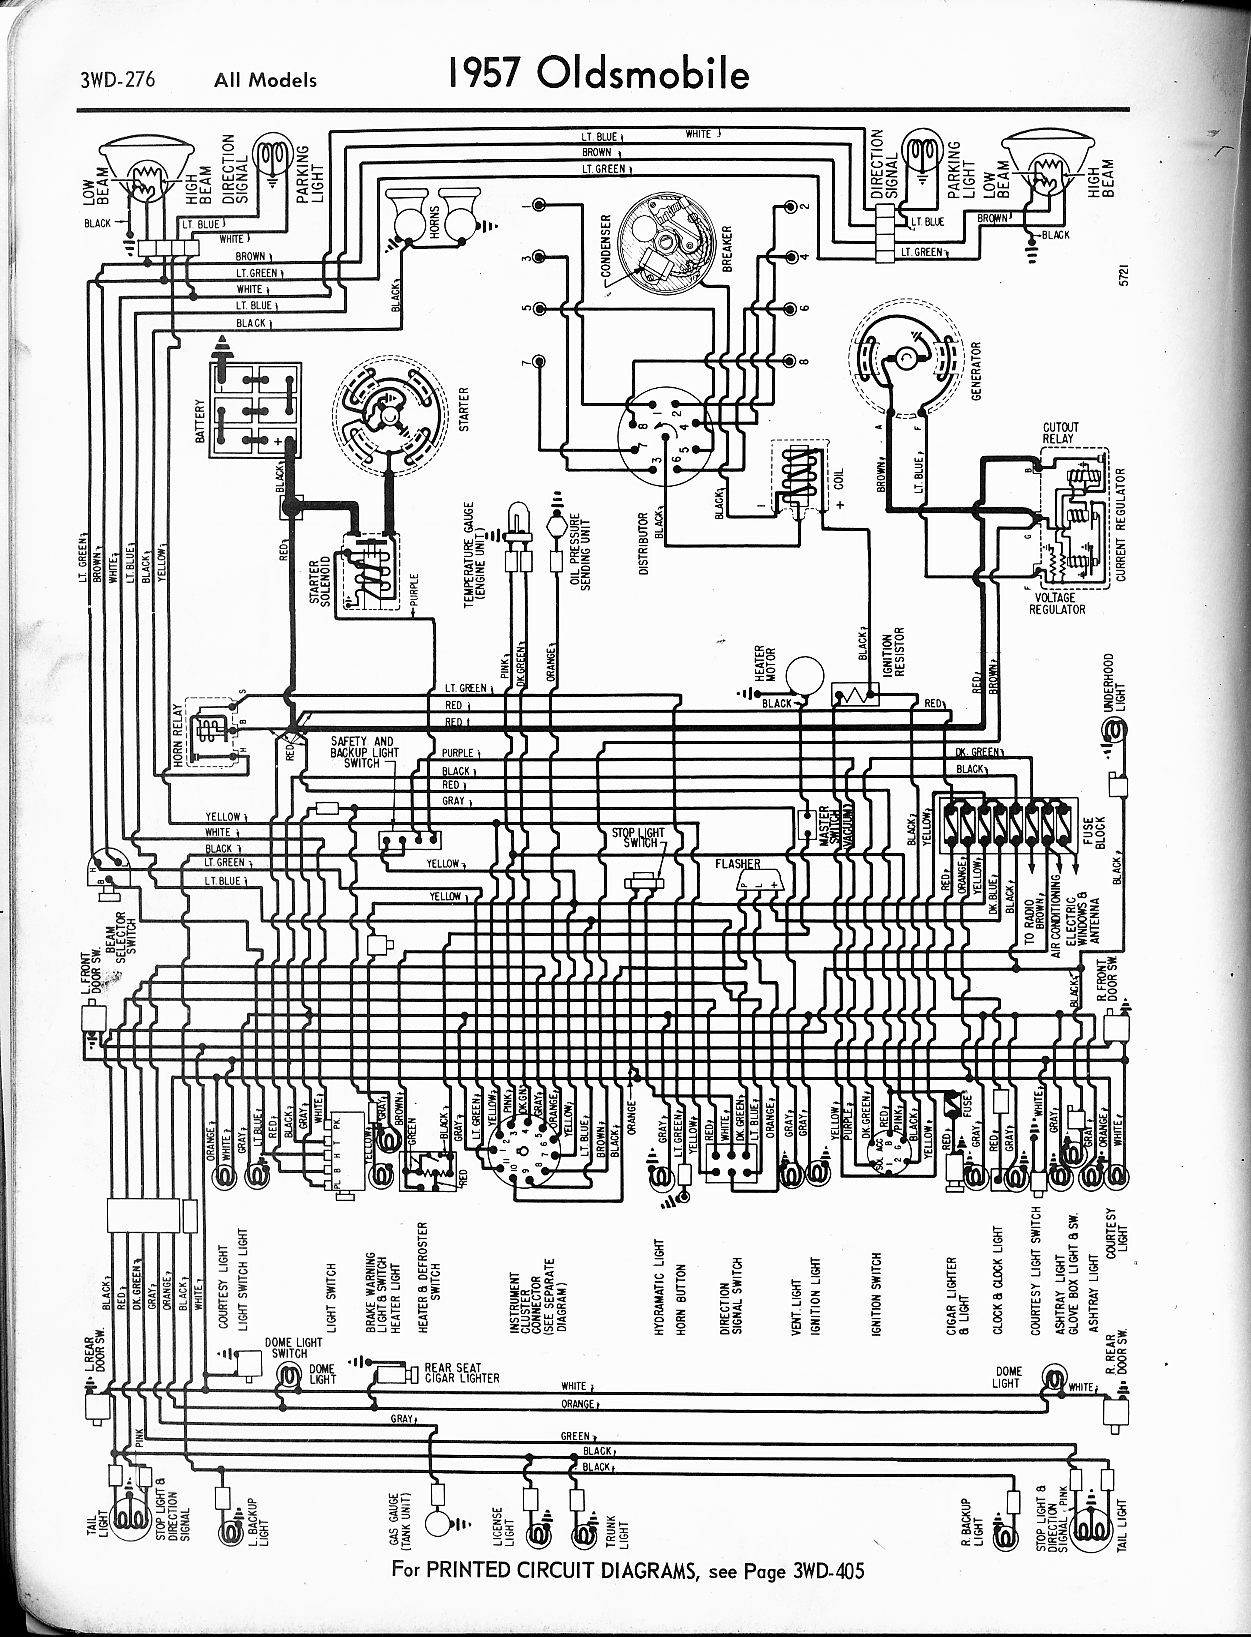 Car Heater Blower Motor Wiring Diagram Ninety Eight Get Free Image About